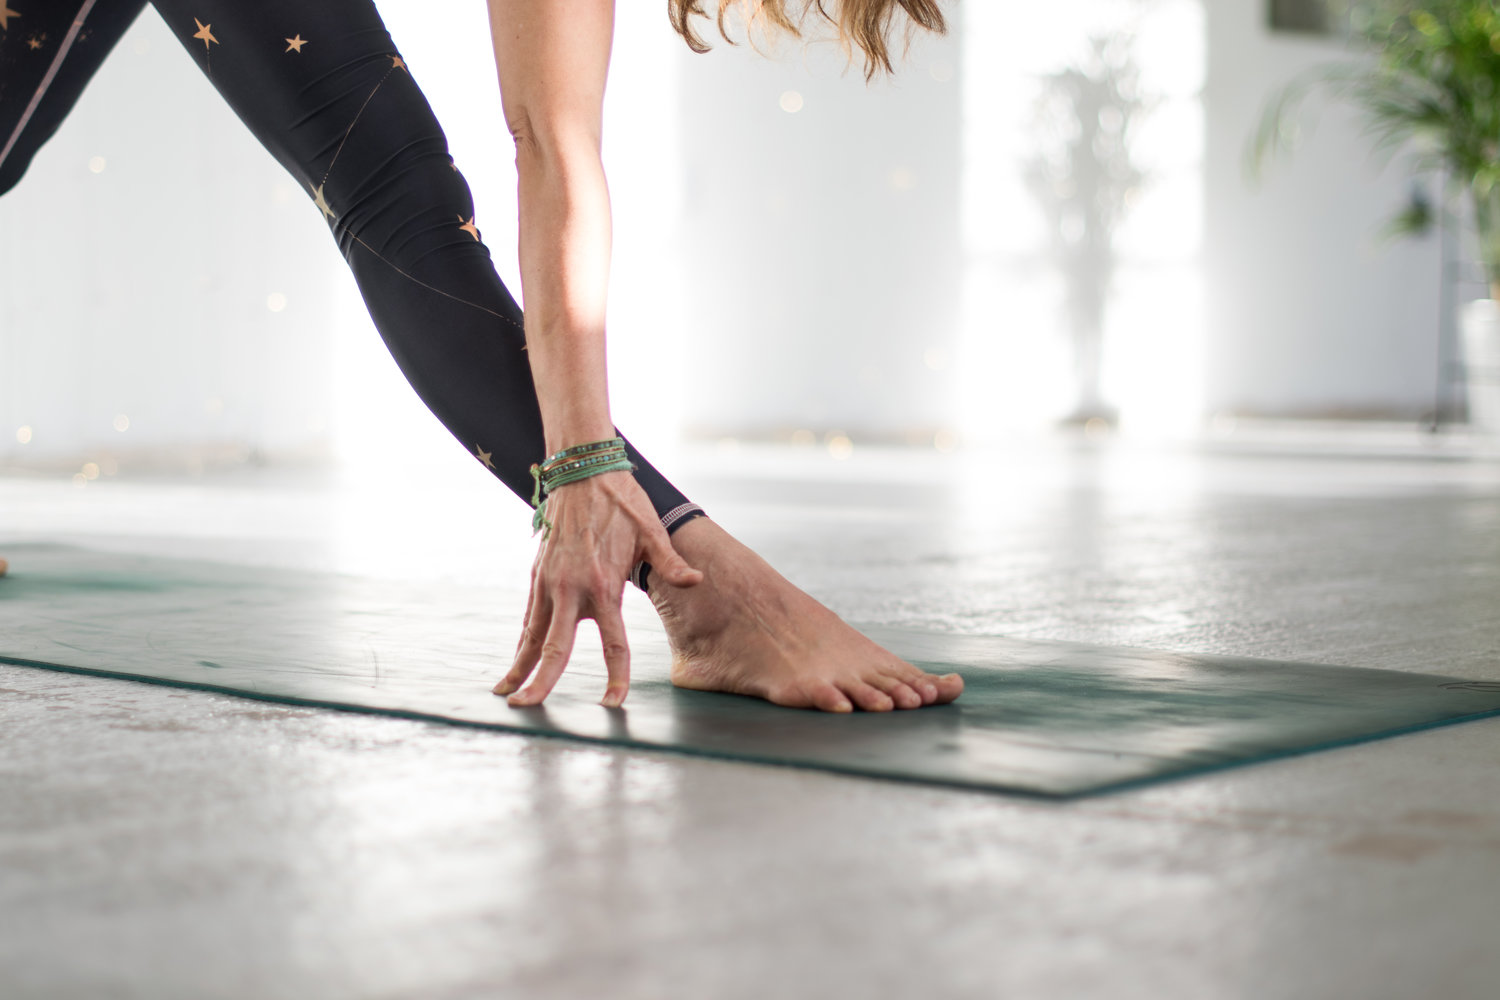 Types of Class — Barefoot and Twisted Yoga